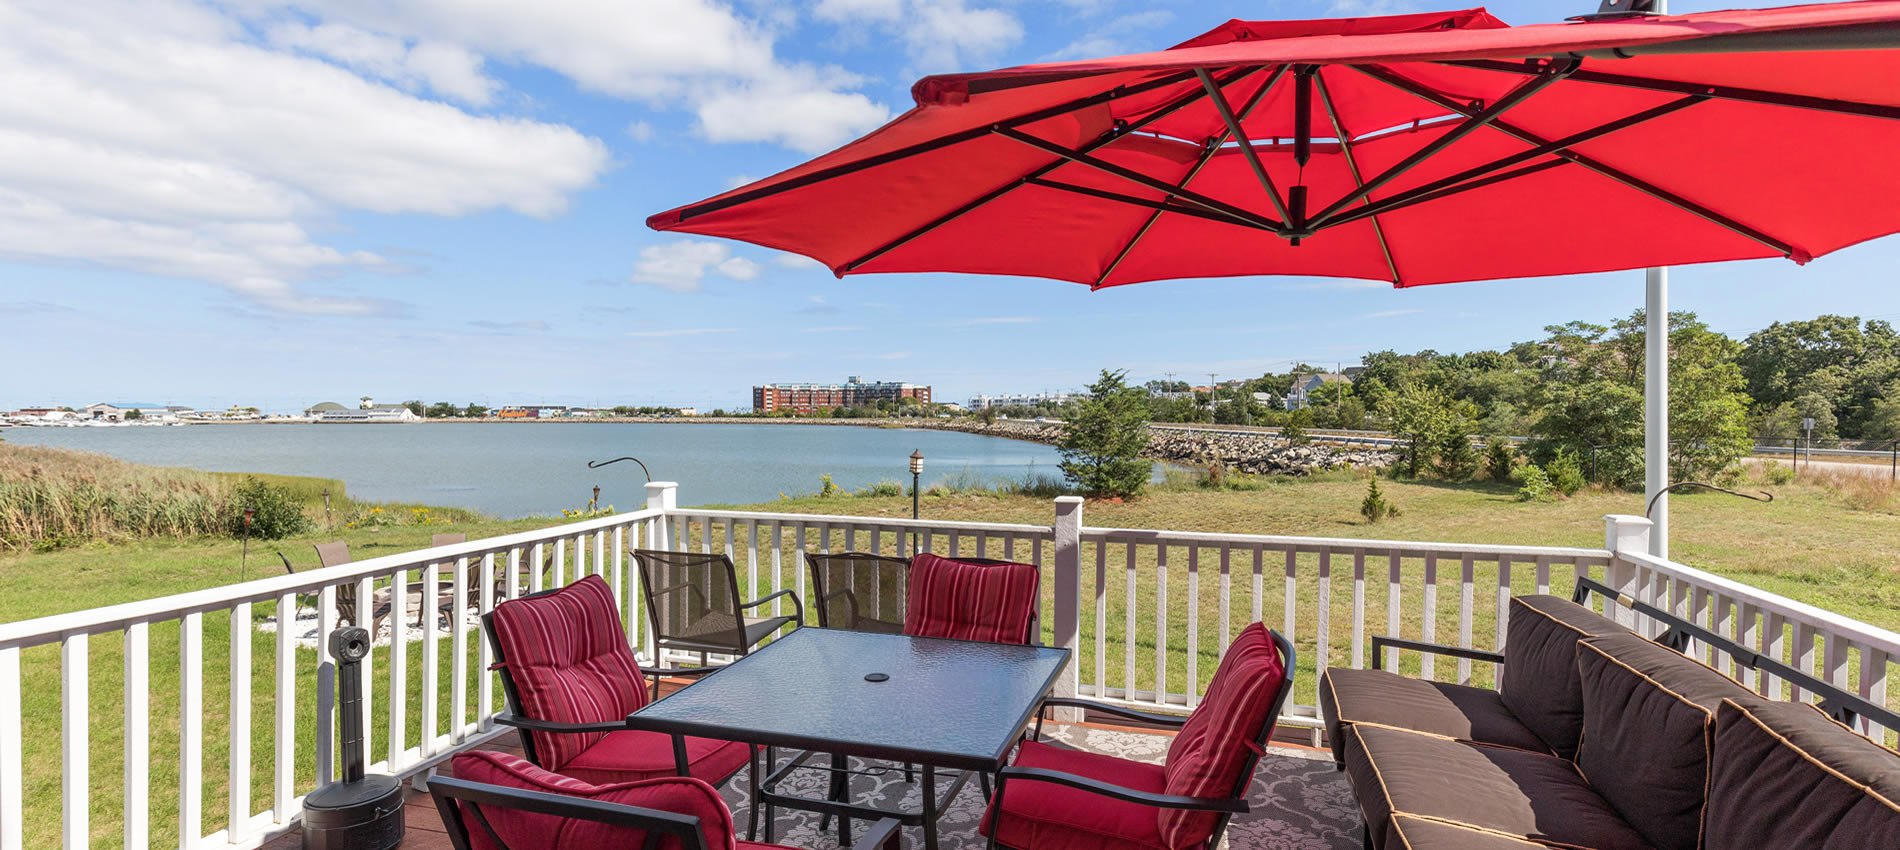 beacon waterfront inn in hull ma deck and chairs with umbrella overlooking water